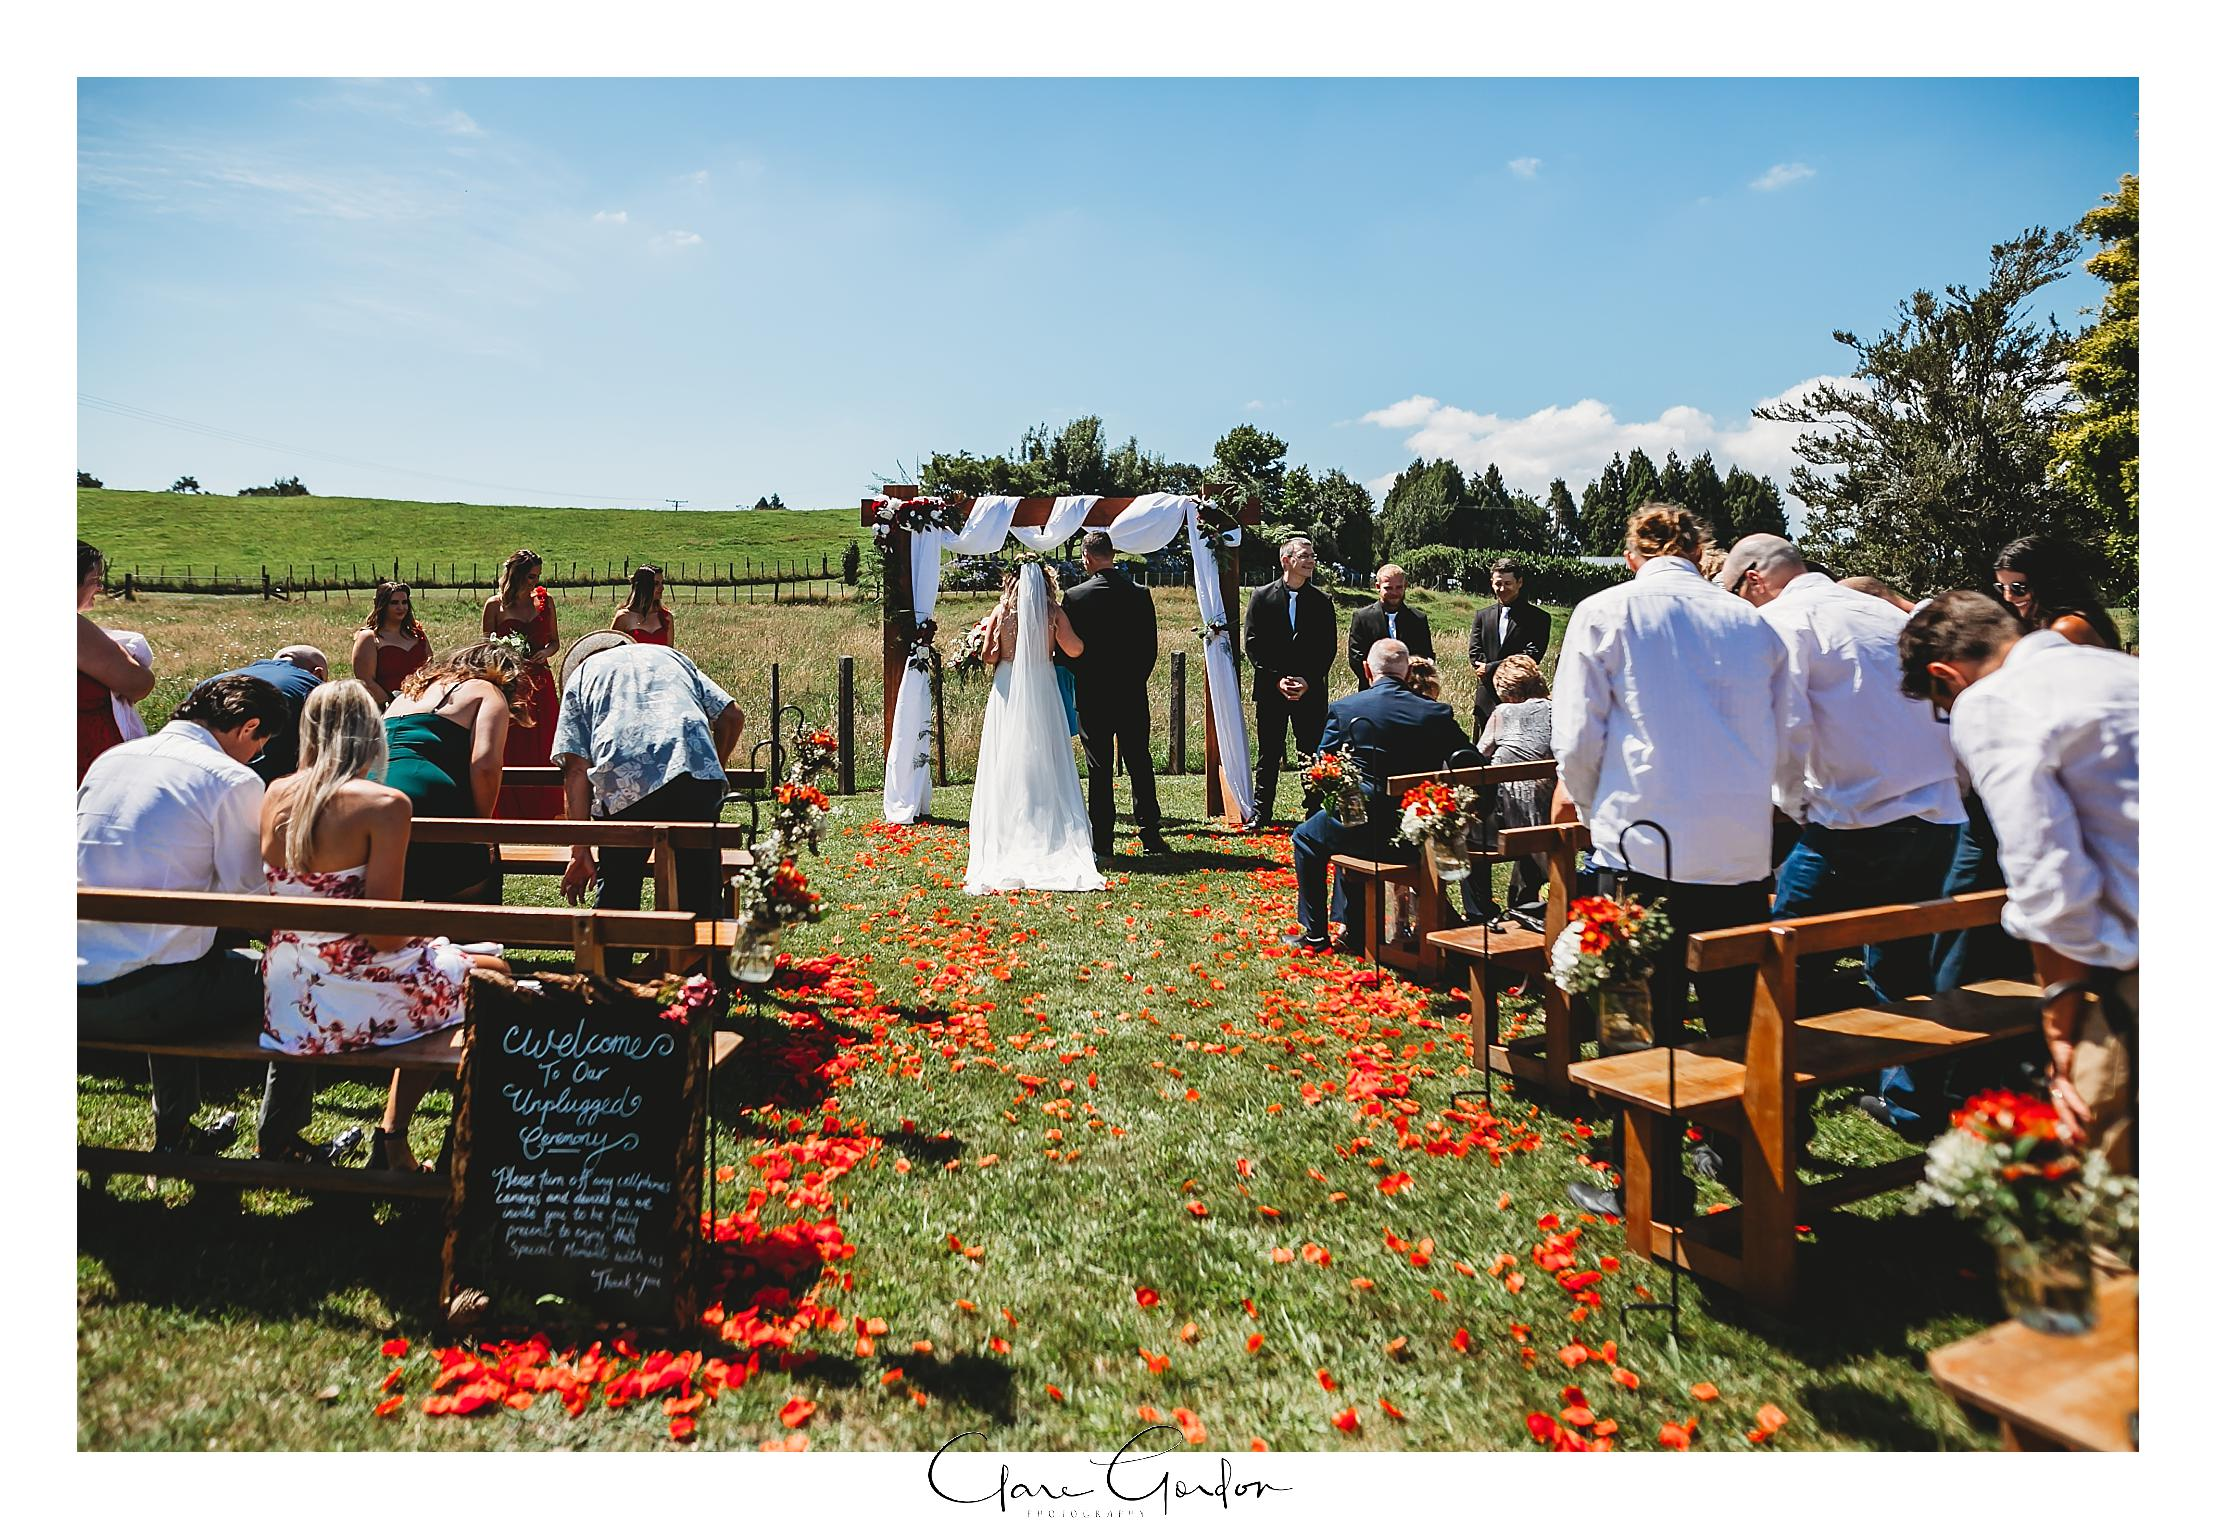 Tauranga-bay-of-plenty-Wedding-Forest-wedding (26).jpg